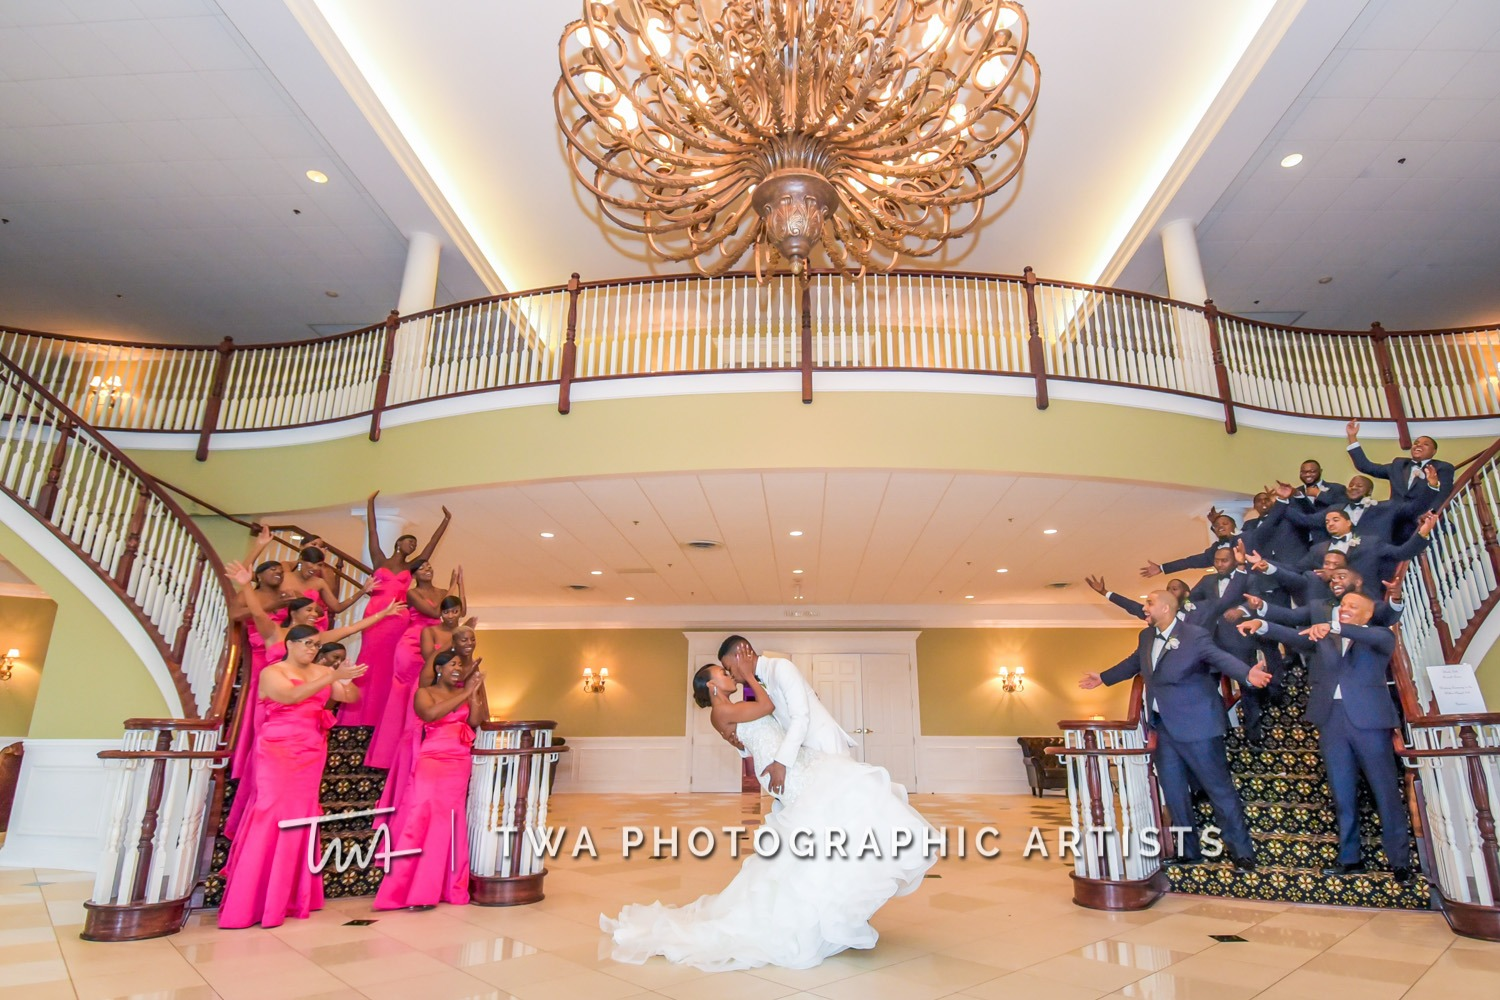 Chicago-Wedding-Photographer-TWA-Photographic-Artists-DiNolfo_s-Banquets_Smith_Stapleton_ZZ_CL-079-0509